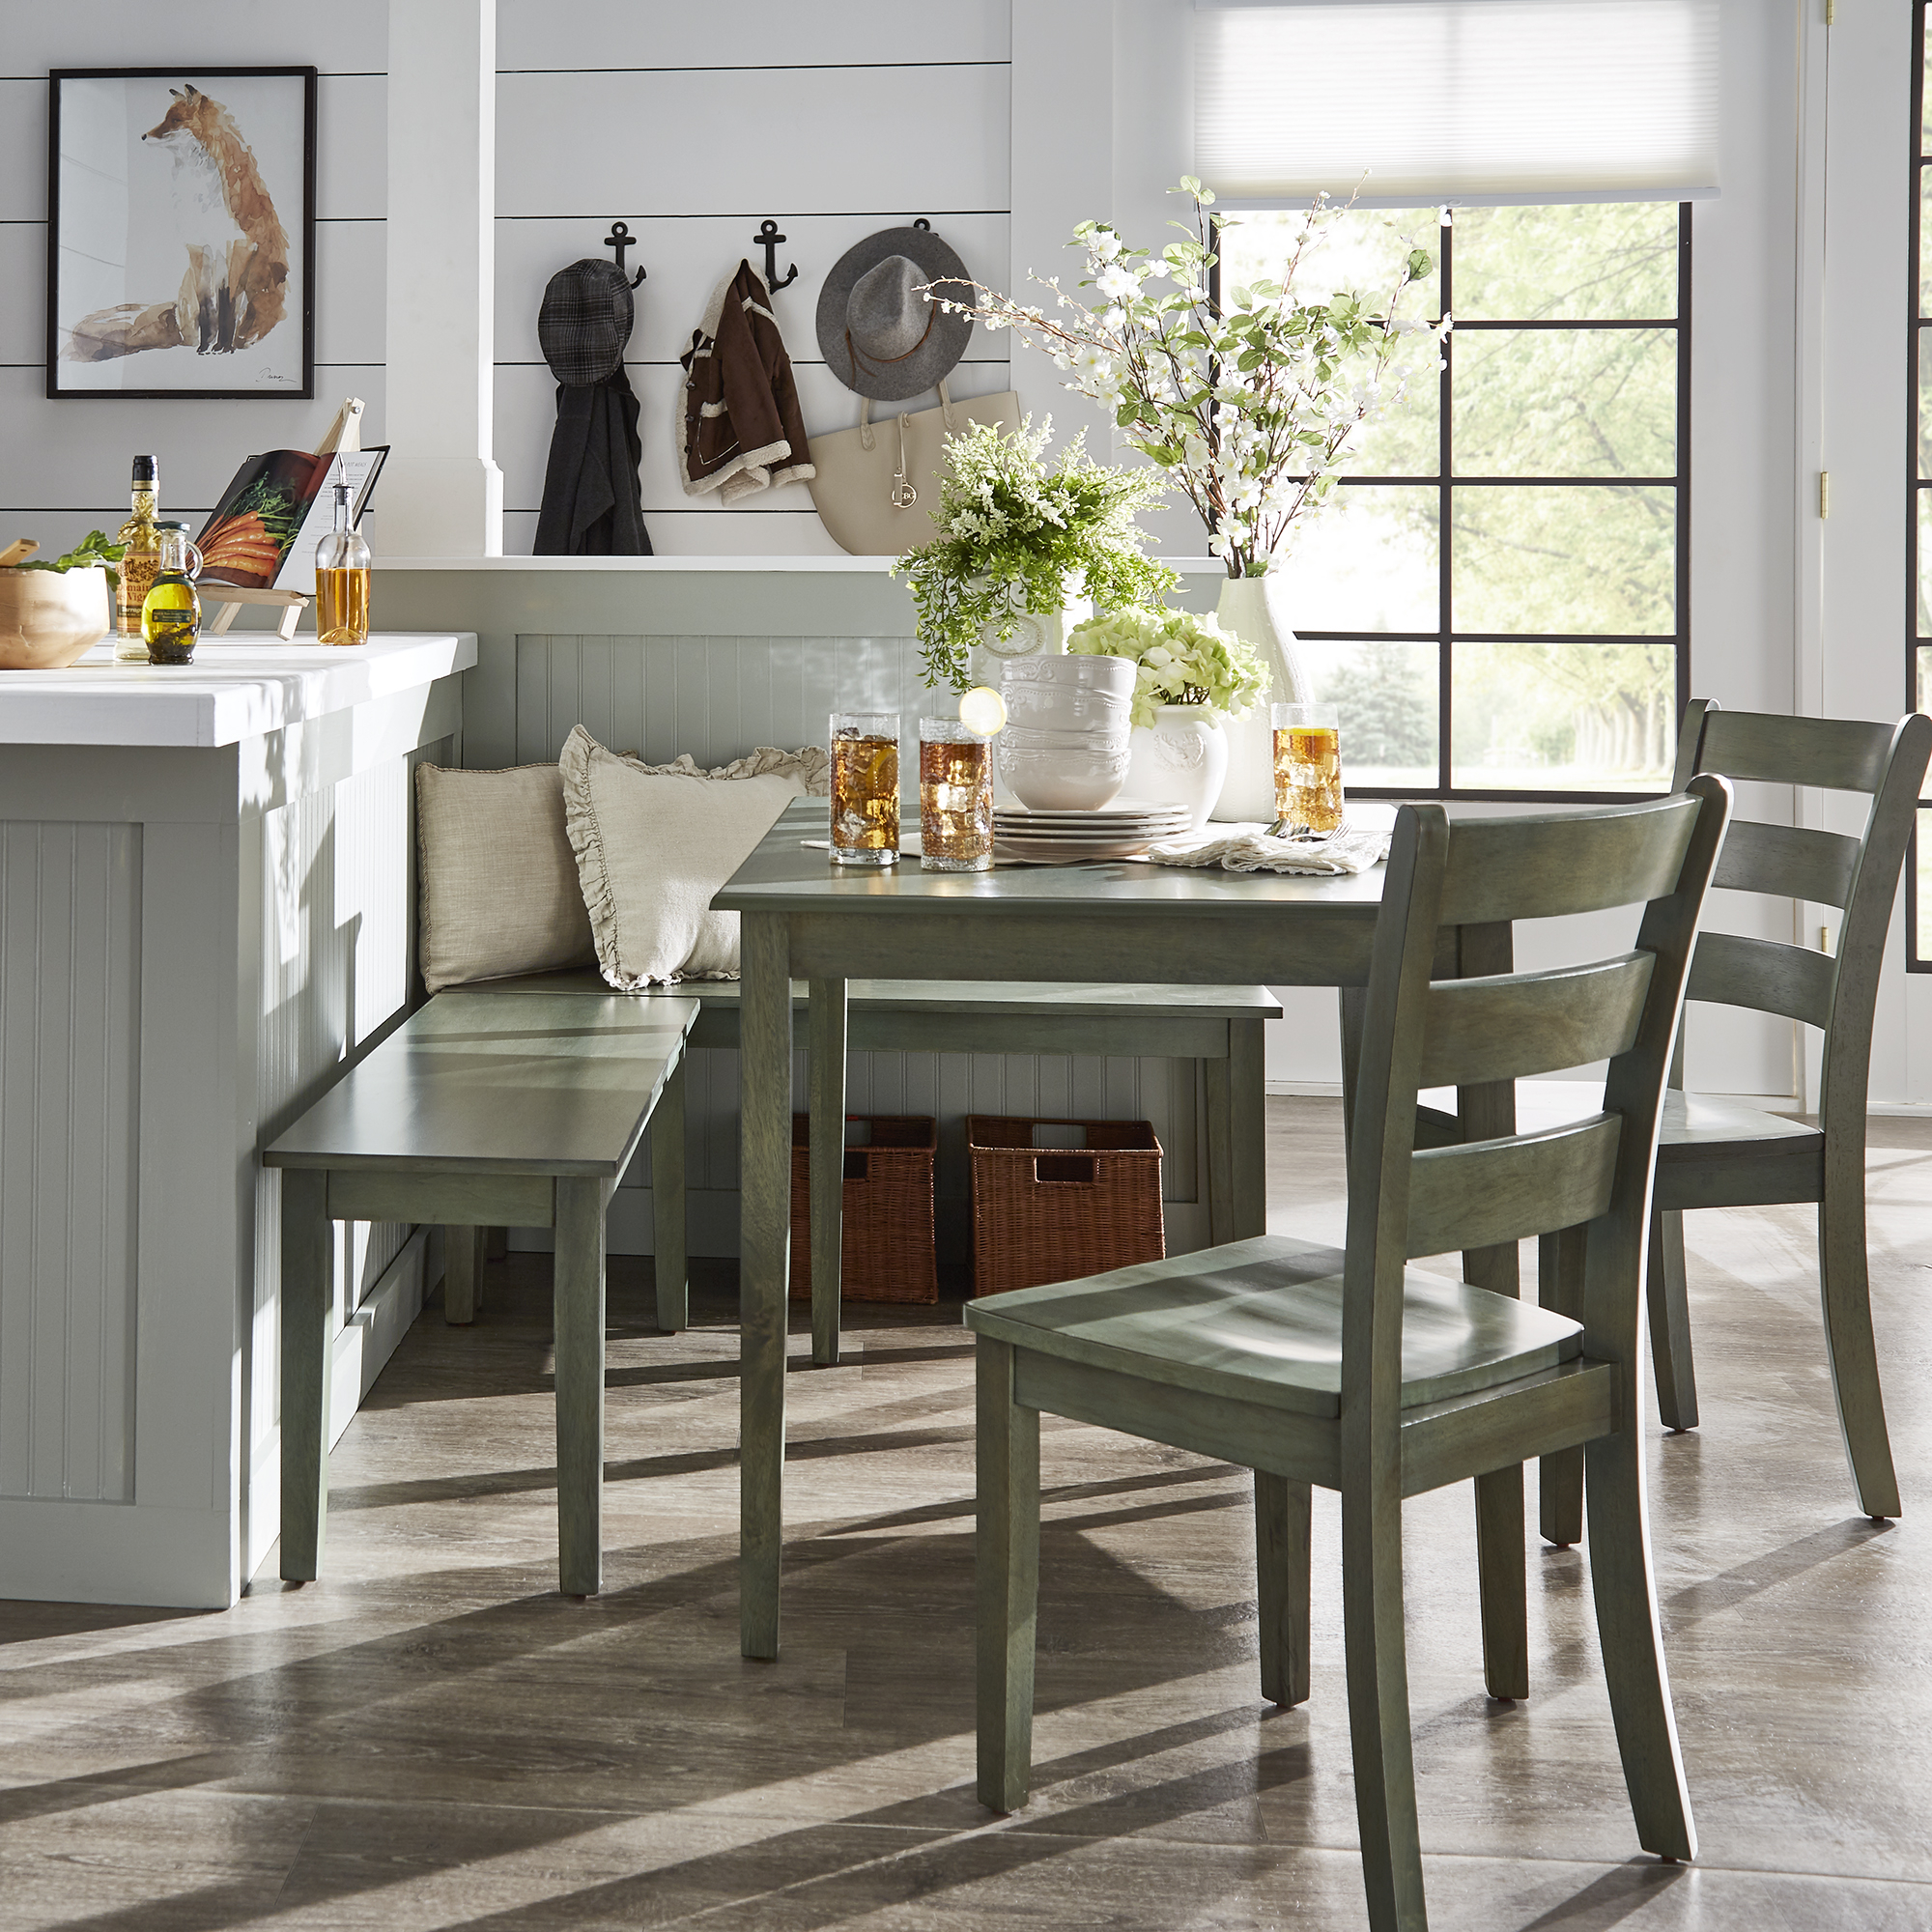 5 Piece Breakfast Nook Dining Sets Regarding Preferred Weston Home Lexington 5 Piece Breakfast Nook Dining Set, Rectangular (#2 of 20)